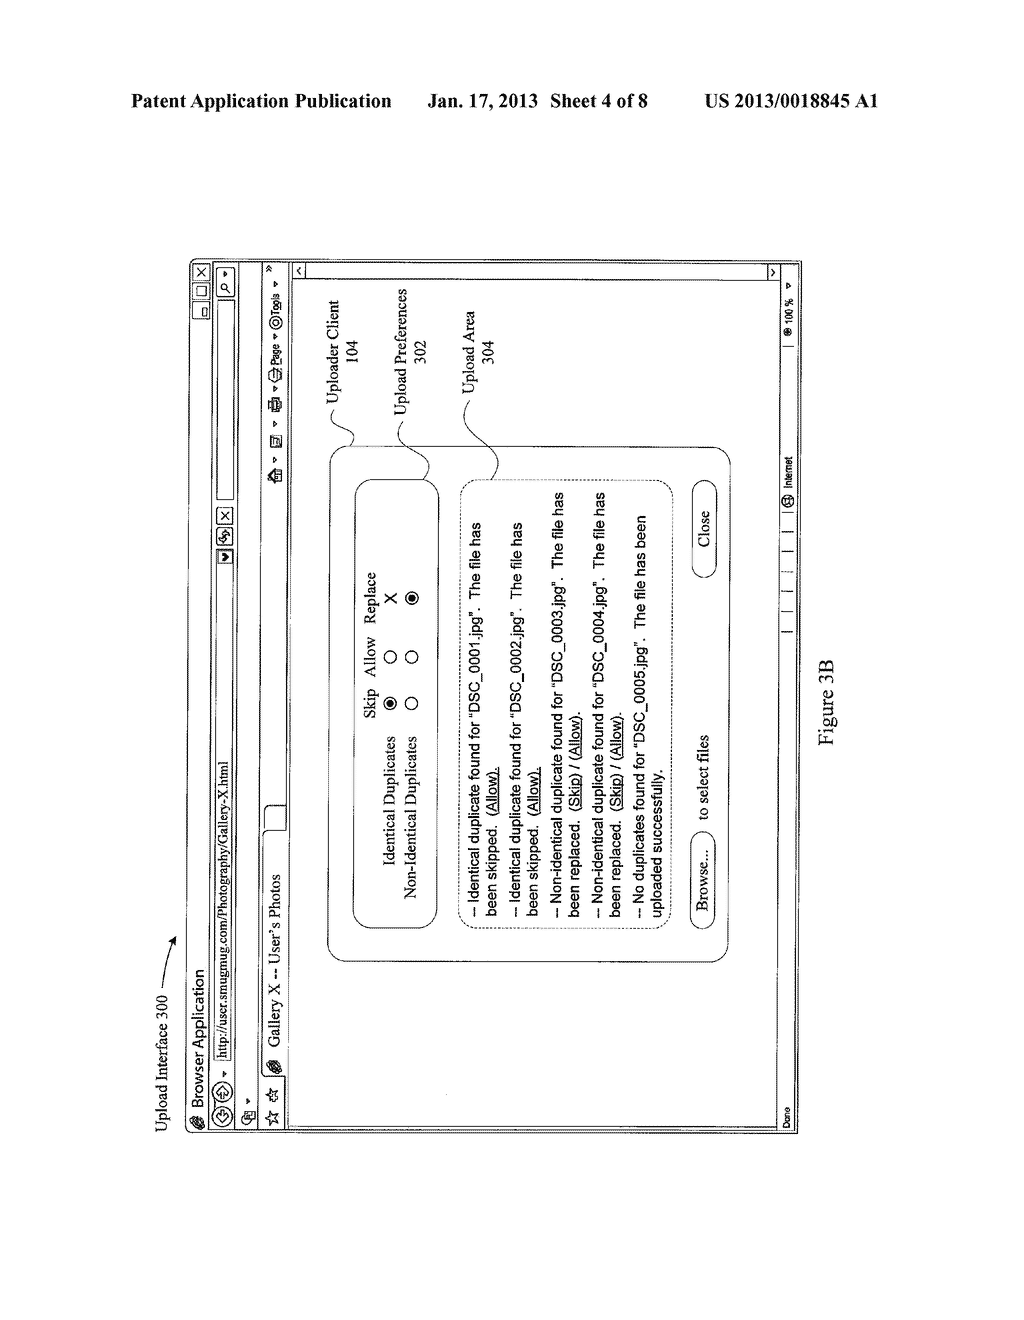 SYSTEM AND METHOD FOR MANAGING DUPLICATE FILE UPLOADSAANM Macaskill; DonAACI Los AltosAAST CAAACO USAAGP Macaskill; Don Los Altos CA USAANM Nichols; SamuelAACI Mountain ViewAAST CAAACO USAAGP Nichols; Samuel Mountain View CA US - diagram, schematic, and image 05